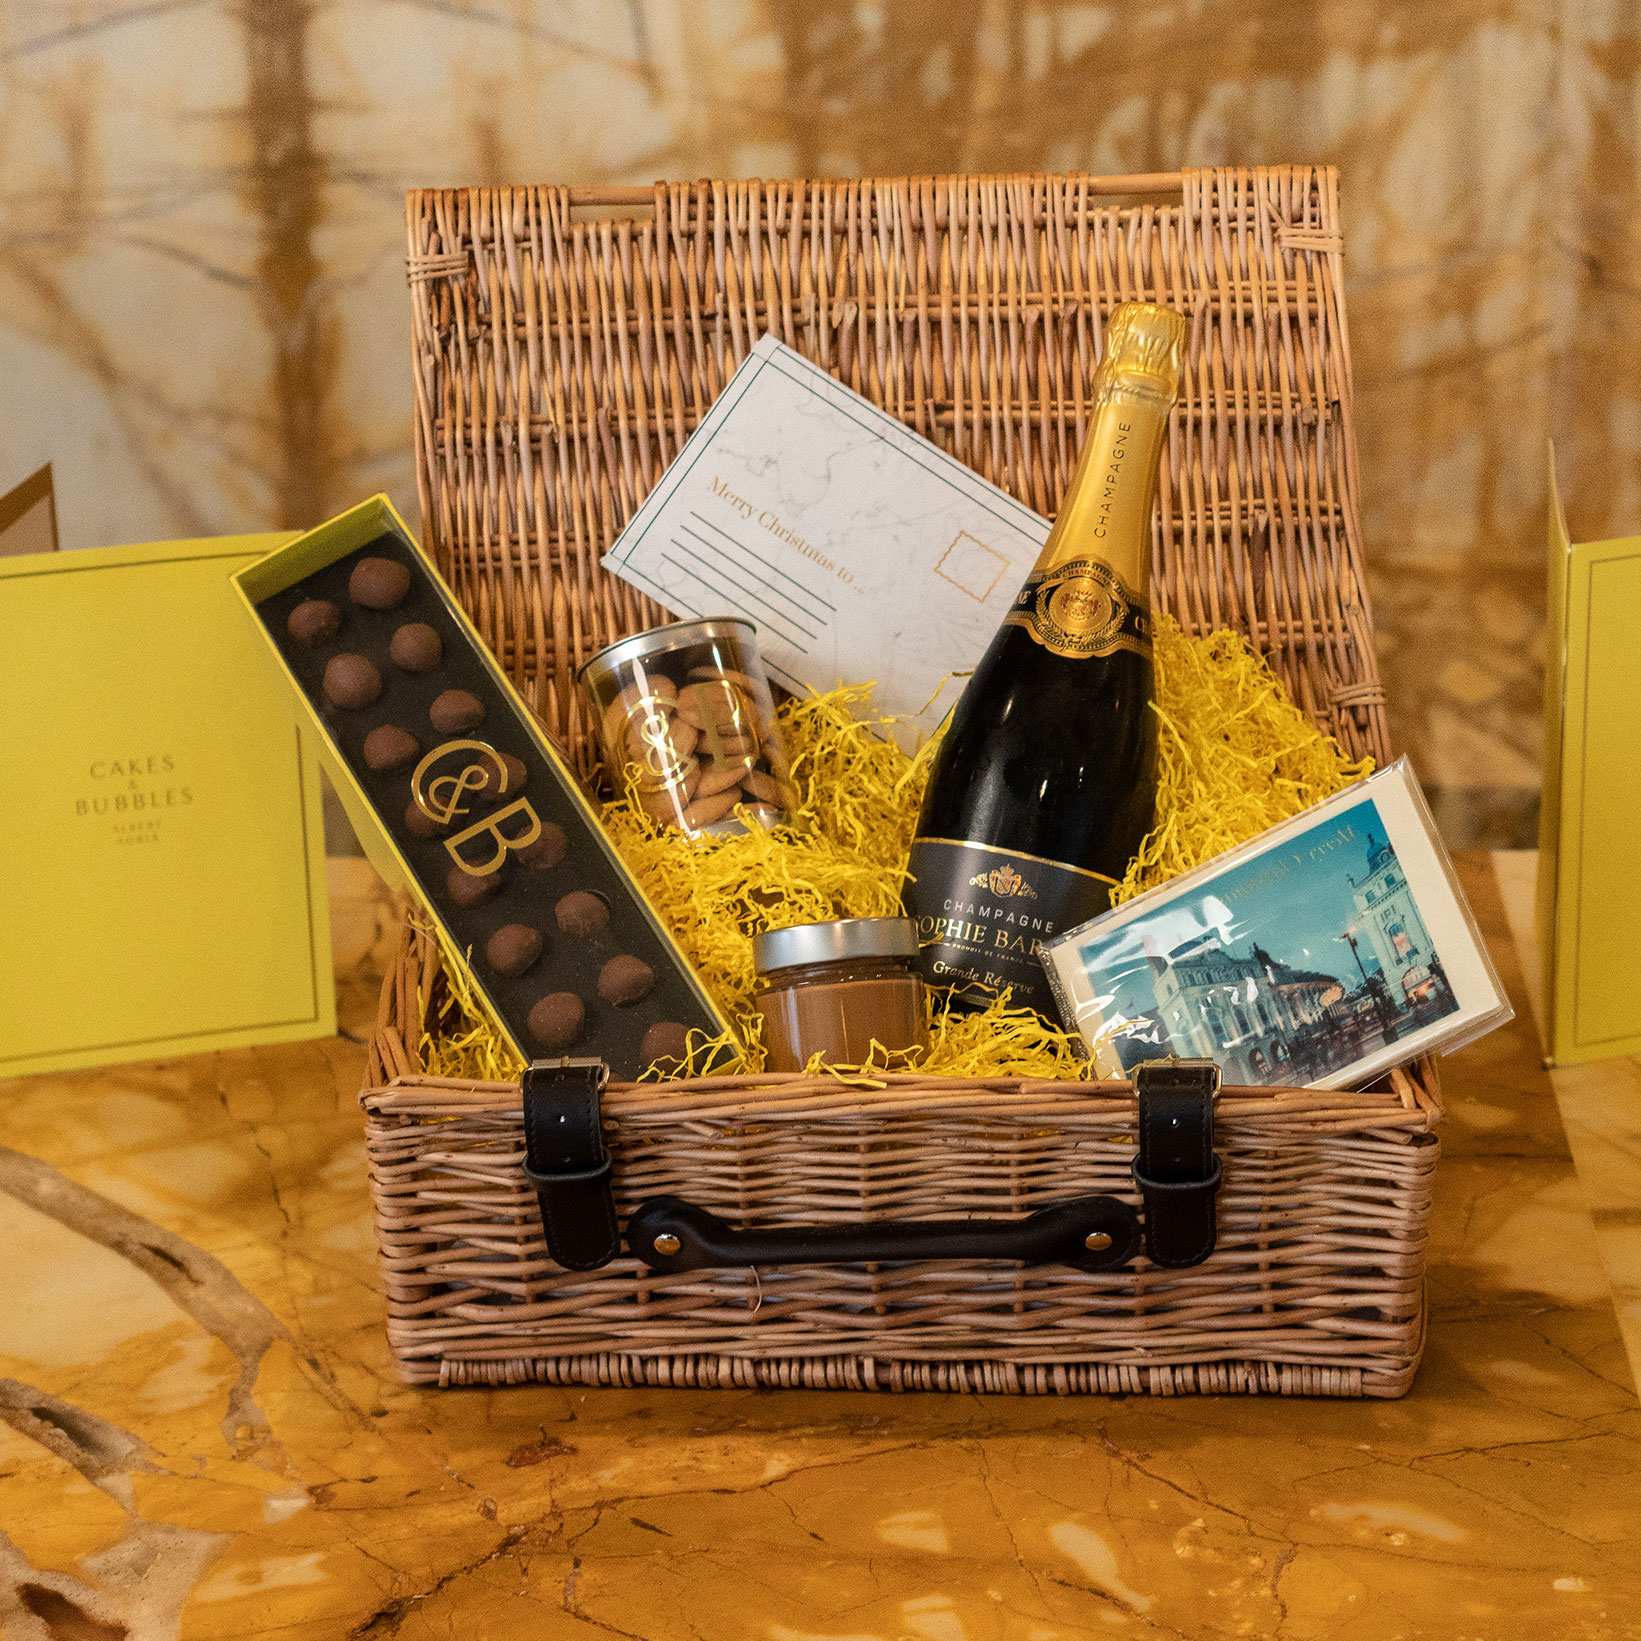 The-Regent-Hamper-Cakes-and-Bubbles-Hotel-Cafe-Royal-2019-SQUARE